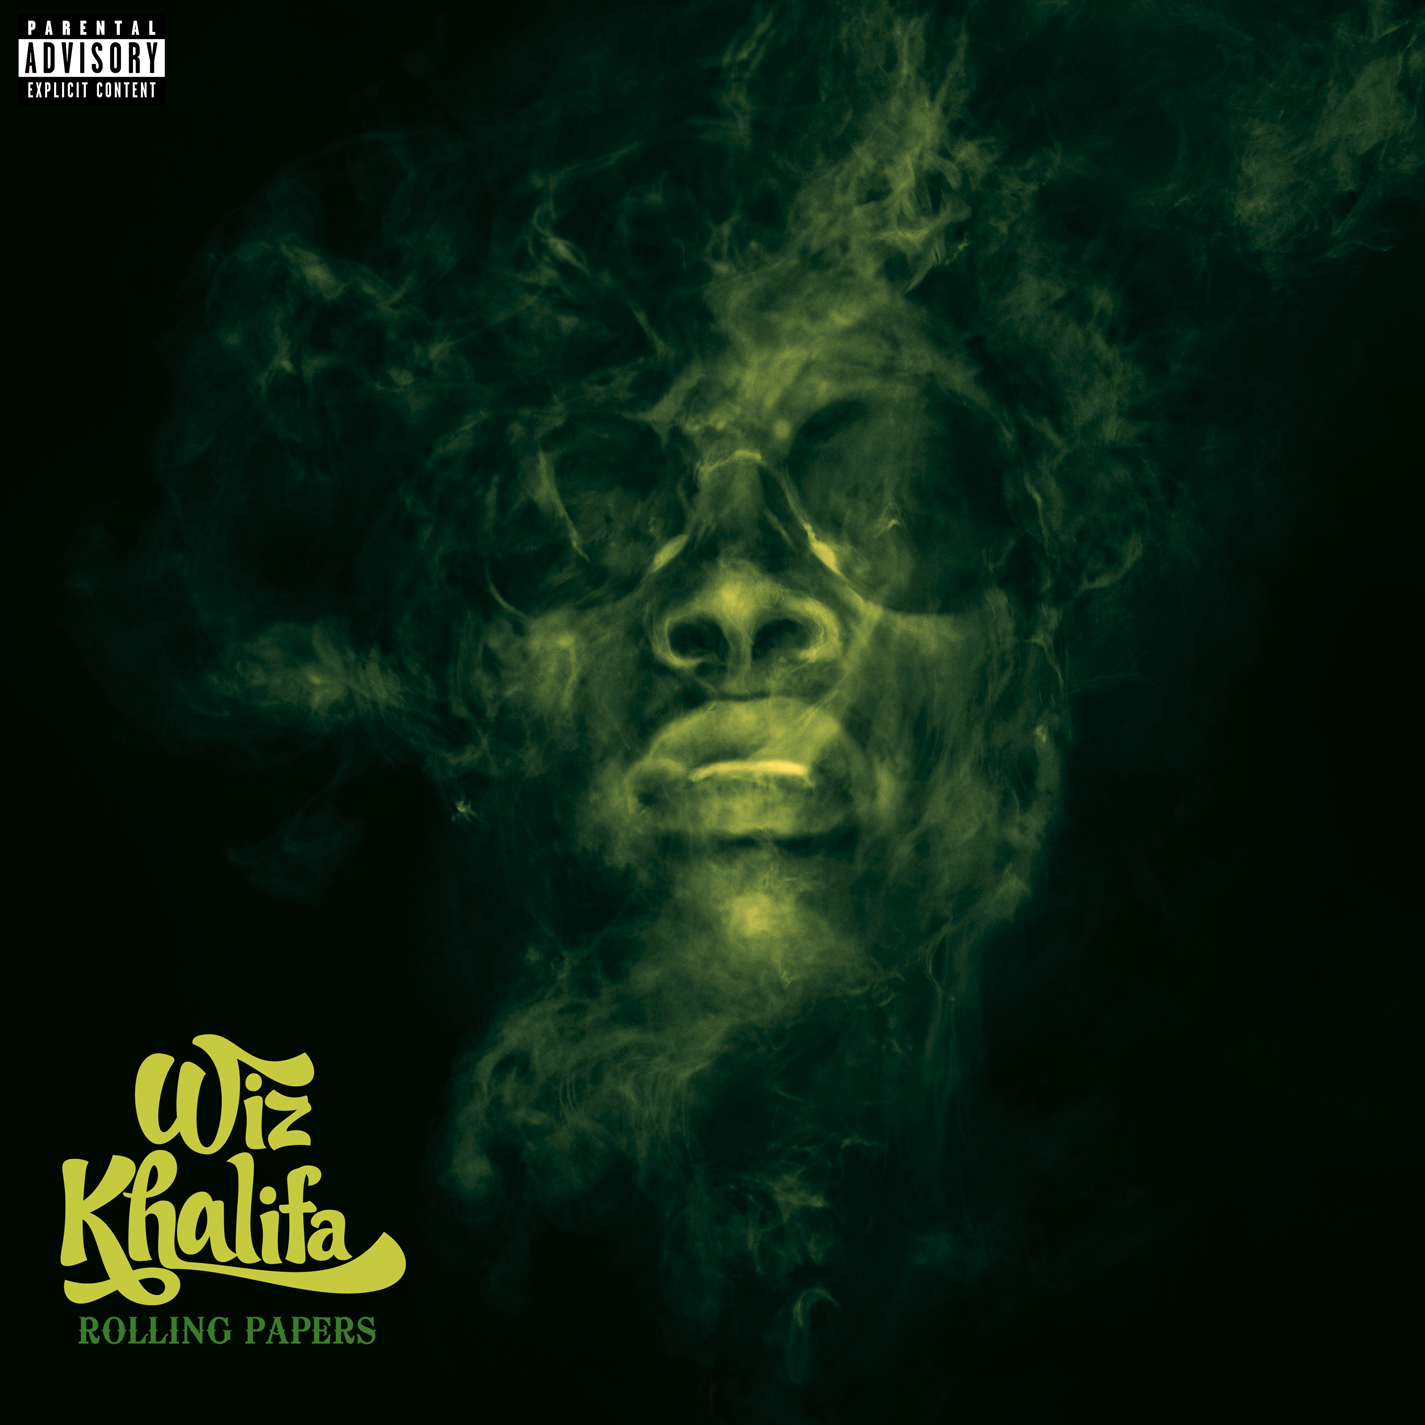 wiz khalifa rolling papers album. Rolling Papers is slated for a